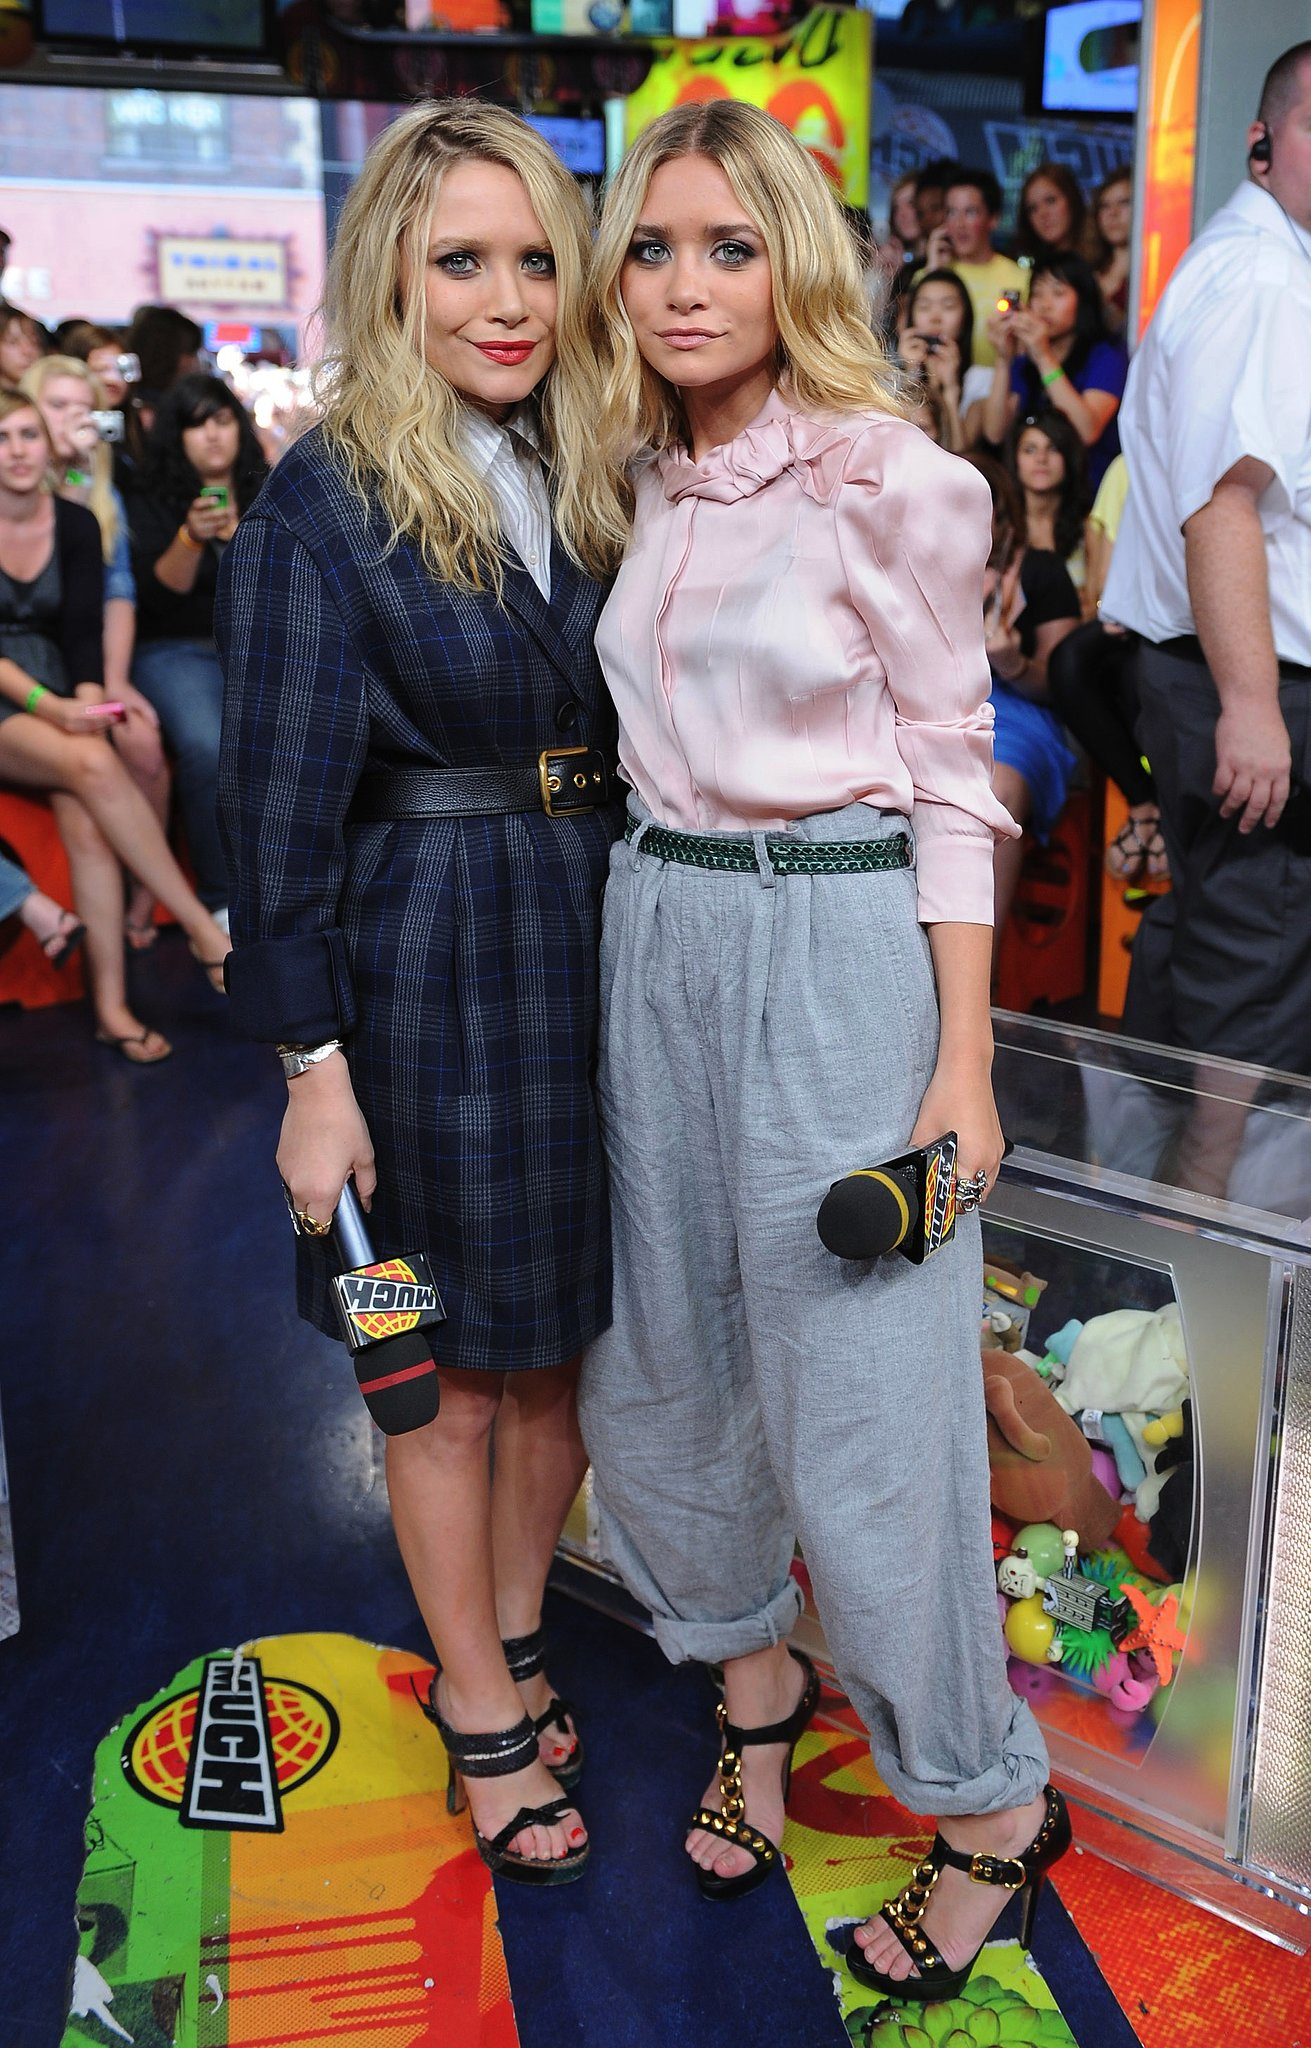 Twinning combo: Mary-Kate and Ashley exuded schoolgirl charm while visiting the MuchOnDemand TV studio in Toronto in March 2009.  Mary-Kate was made for plaid in her Elizabeth and James boyfriend jacket and python Prada sandals. Ashley tucked a blush-pink blouse into cuffed gray trousers, then slipped on her trusty Prada sandals for a touch of edge.